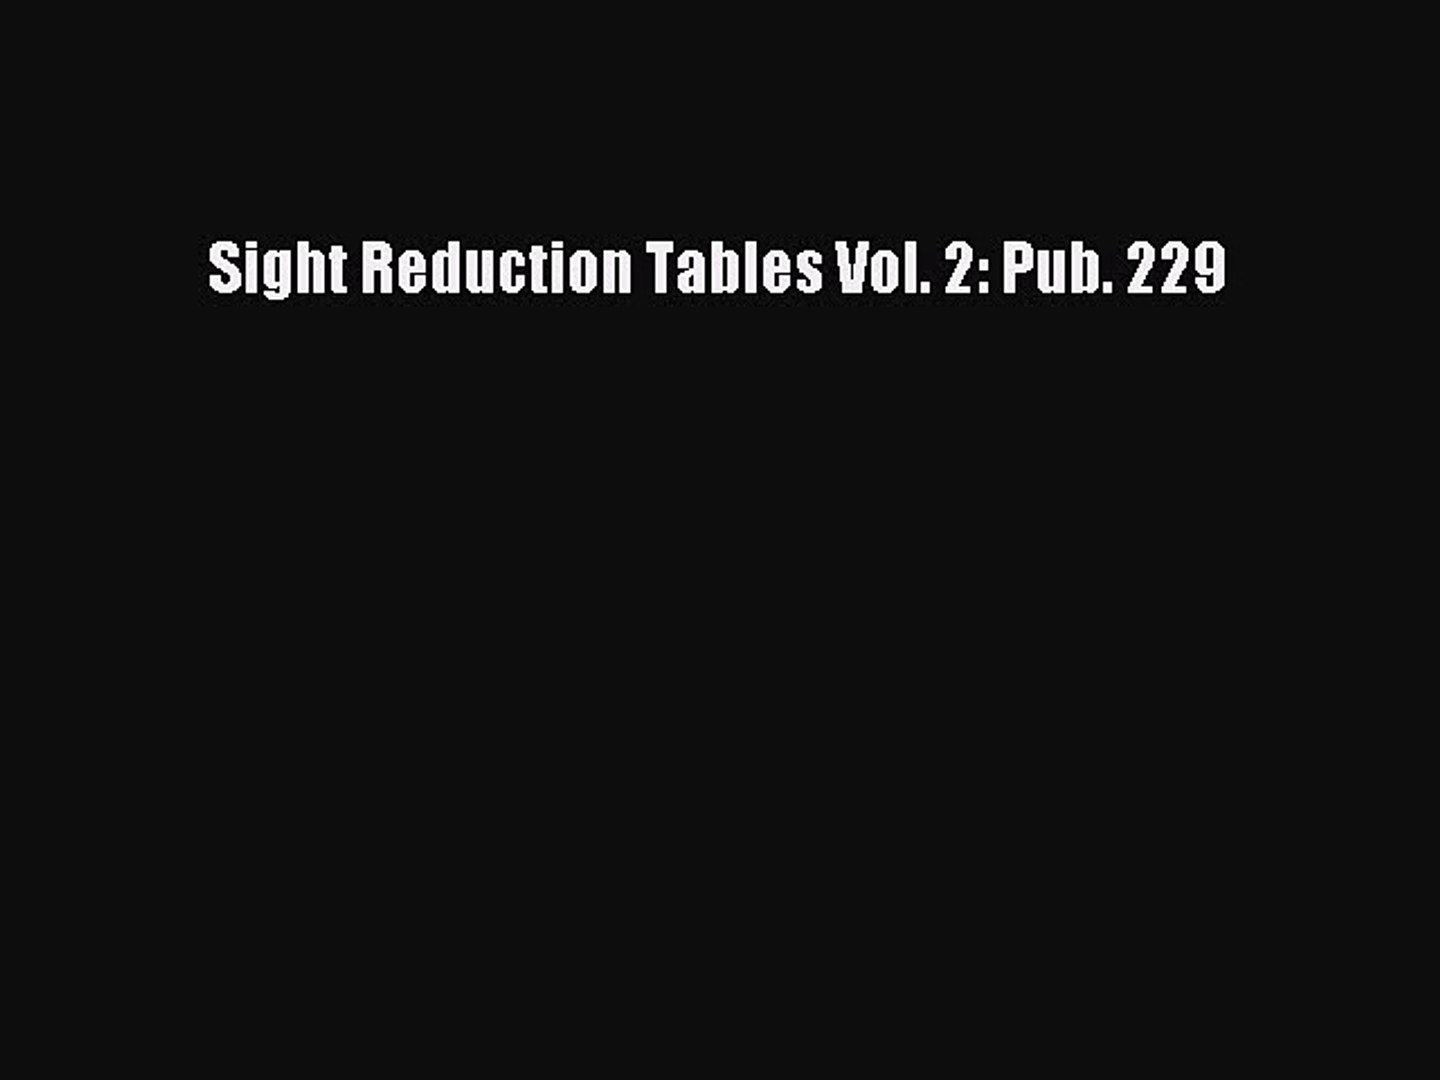 [PDF] Sight Reduction Tables Vol. 2: Pub. 229 Download Full Ebook